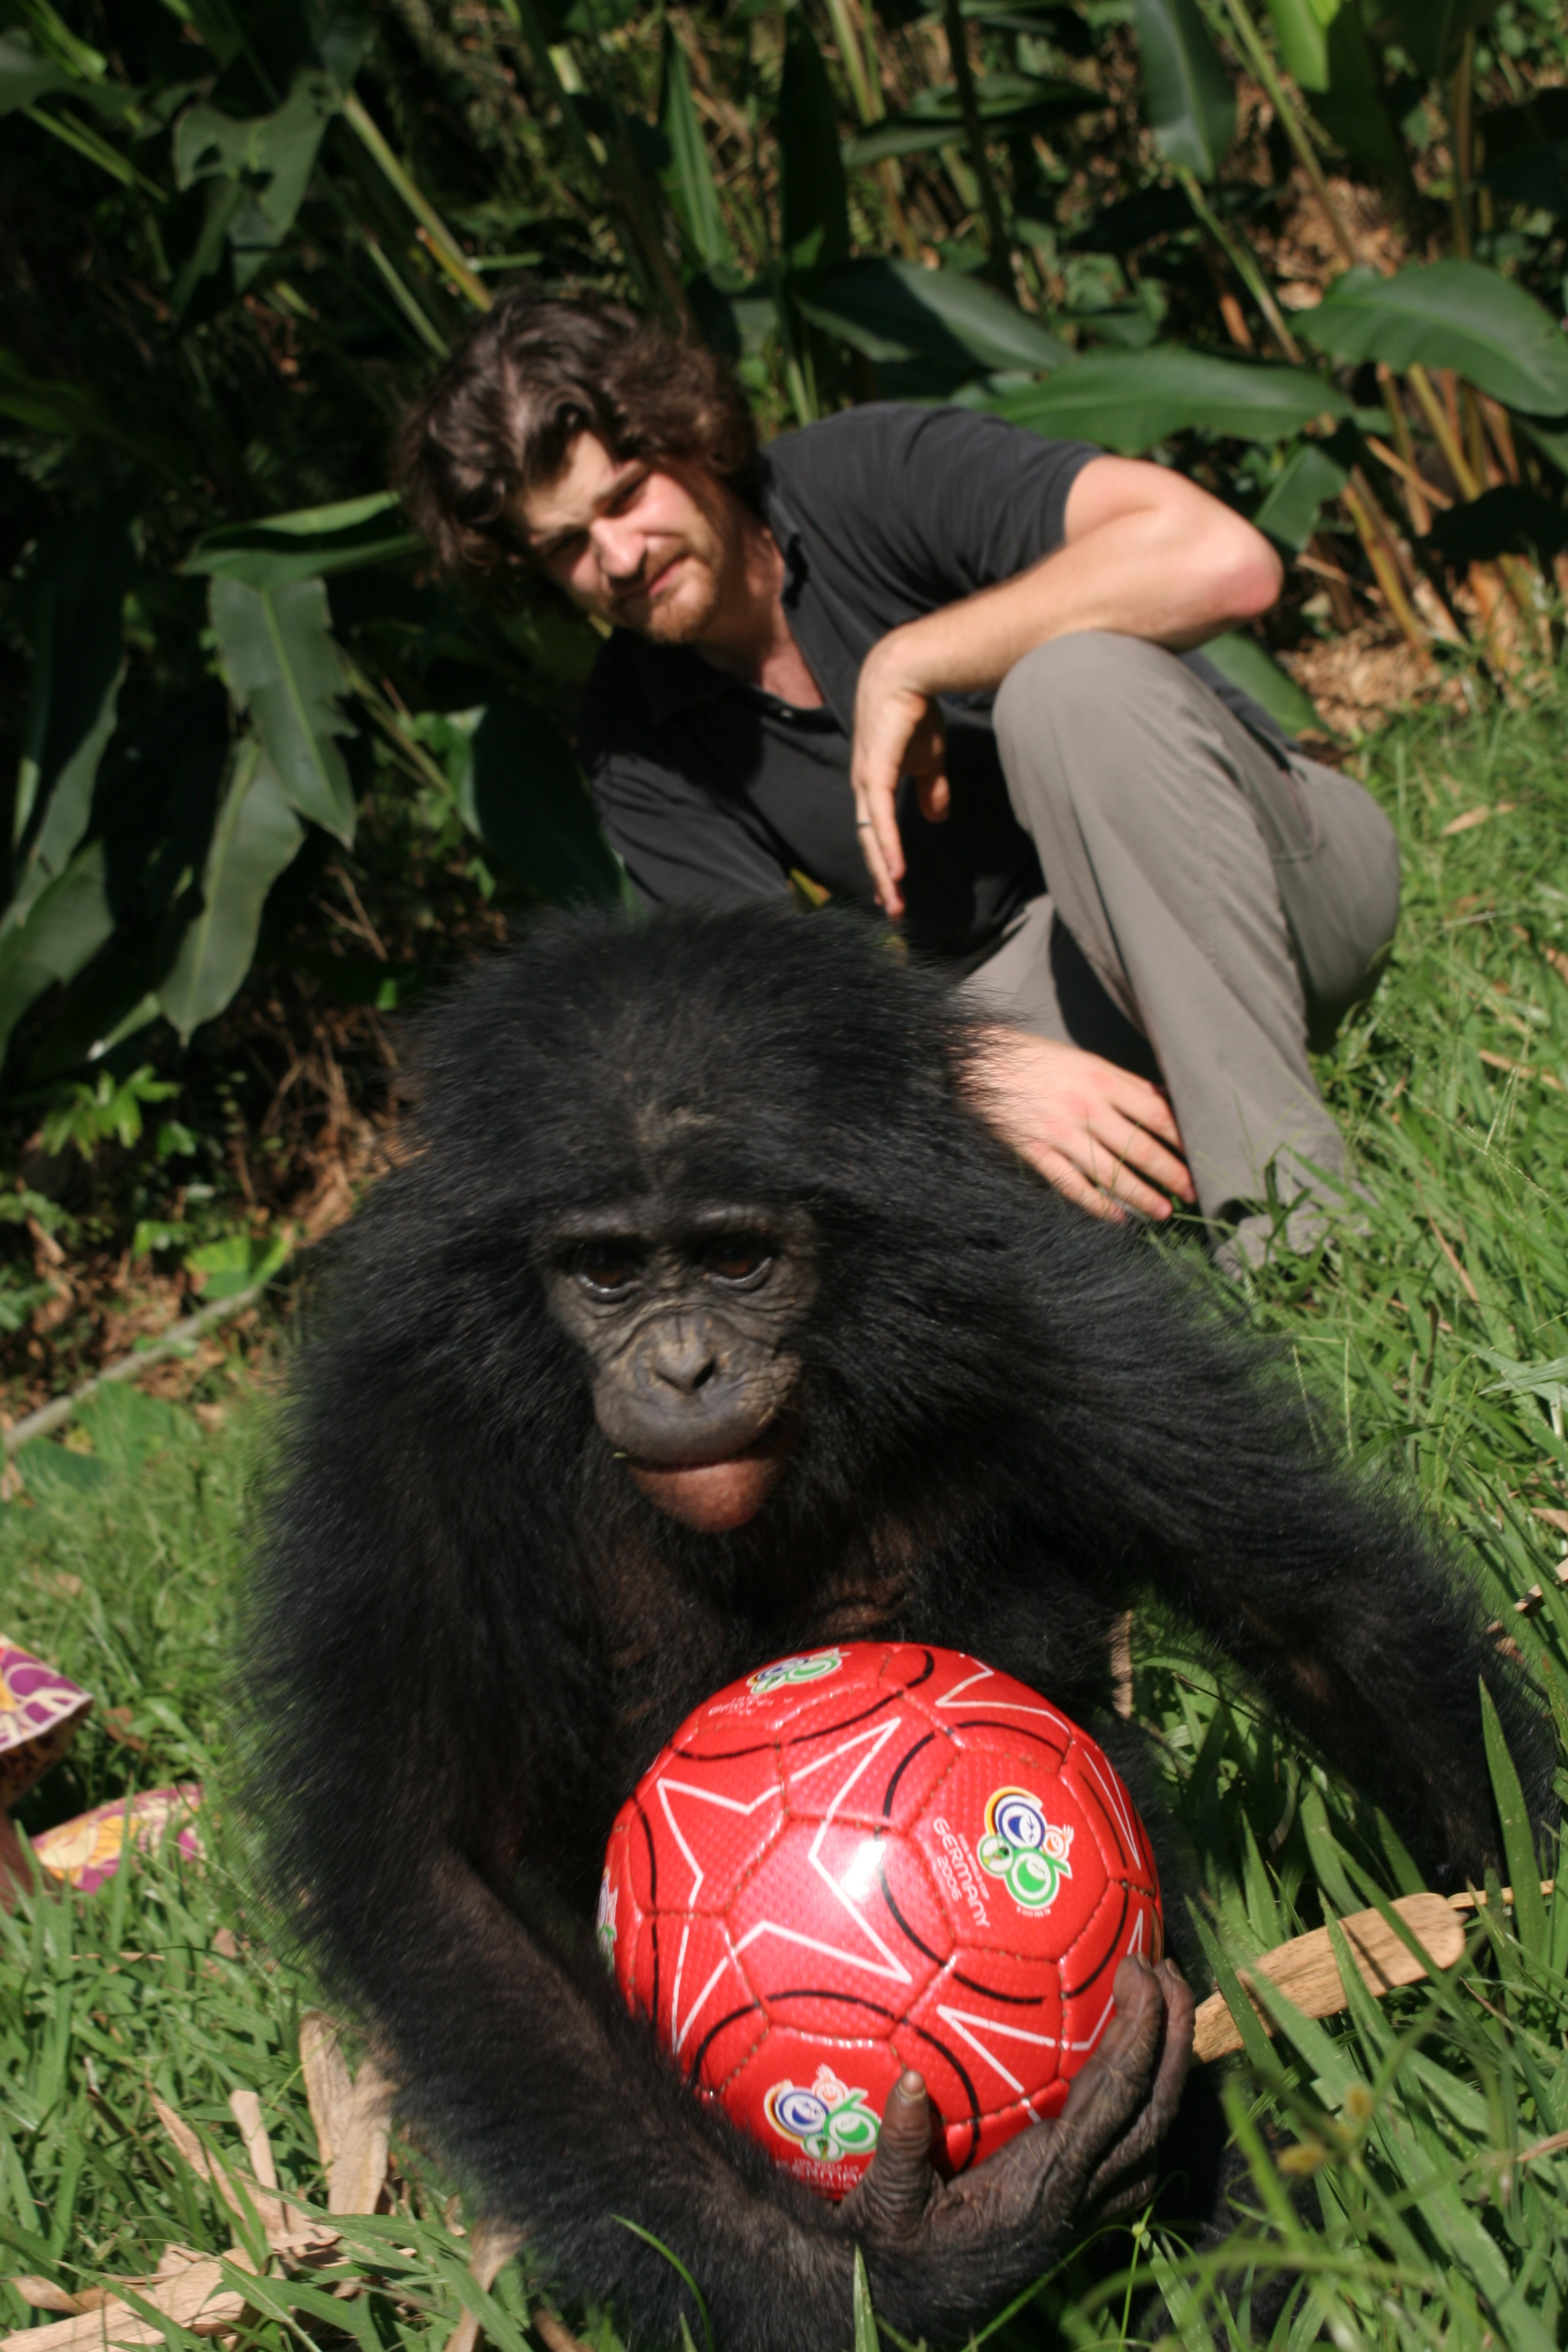 Brian Hare conducting behavioral experiments with bonobos at the rescue center.